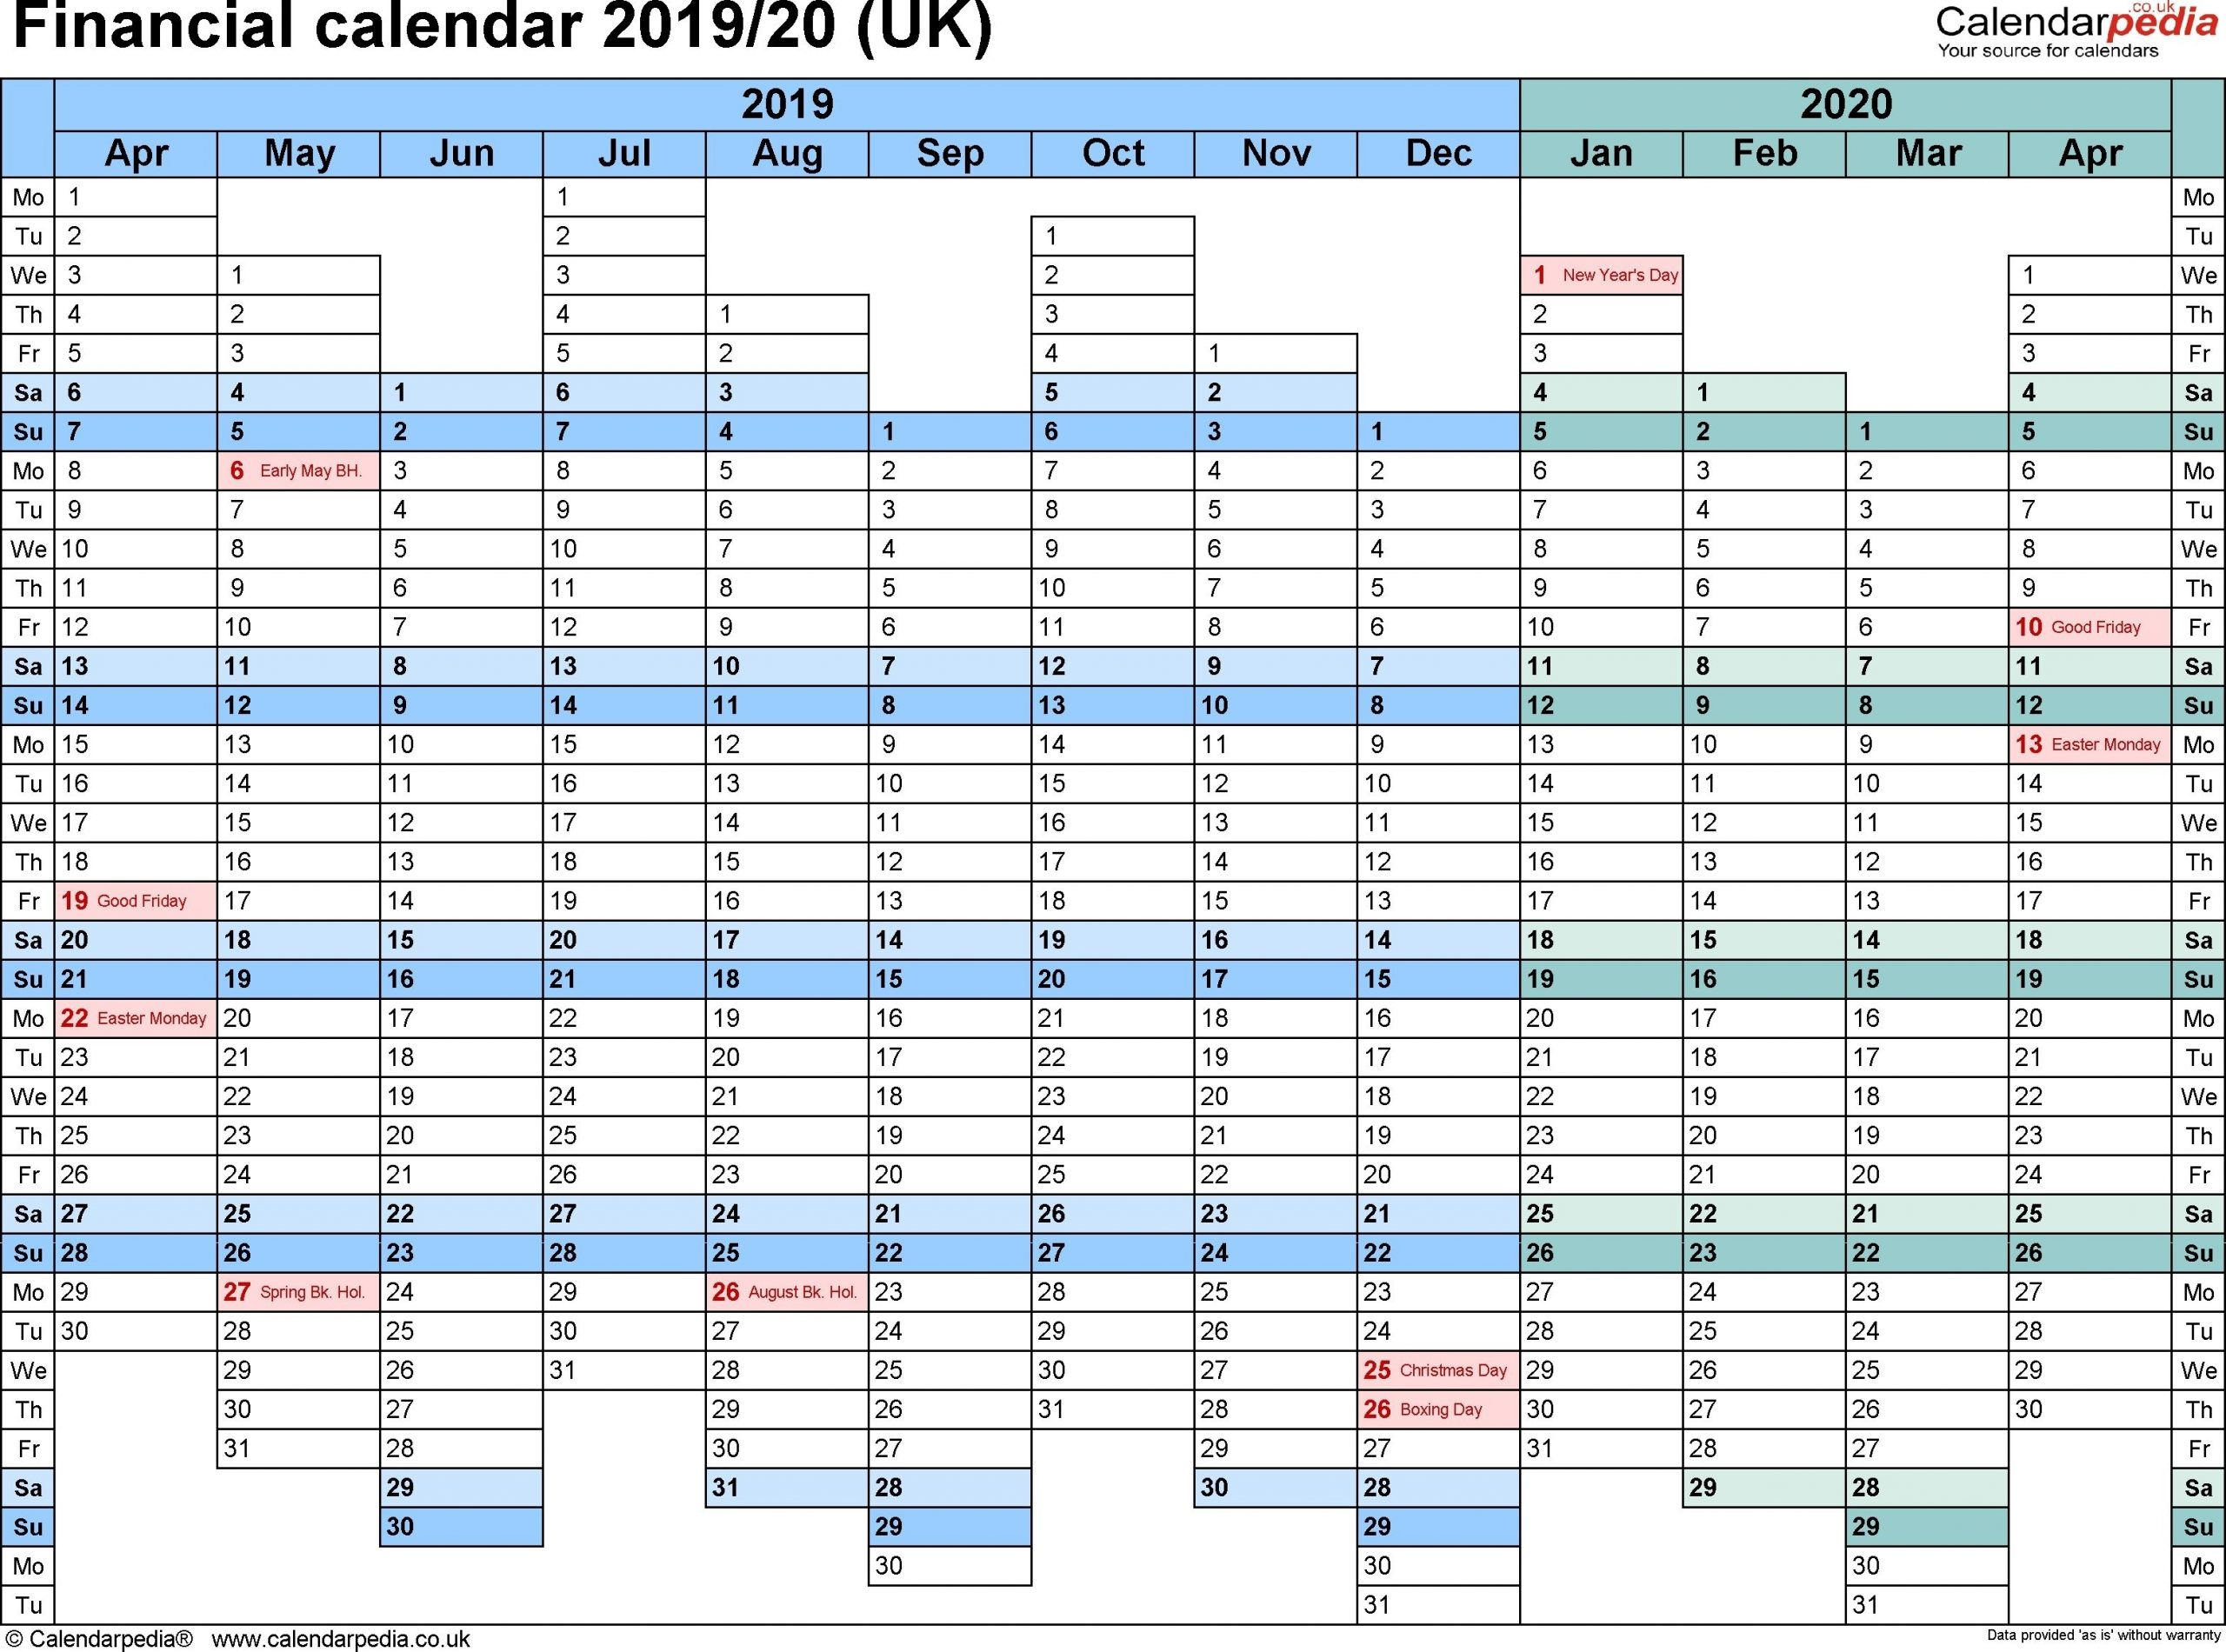 Financial Calendars 2019/20 (Uk) In Pdf Format Catch pertaining to Financial Calendar Week Numbers 2019